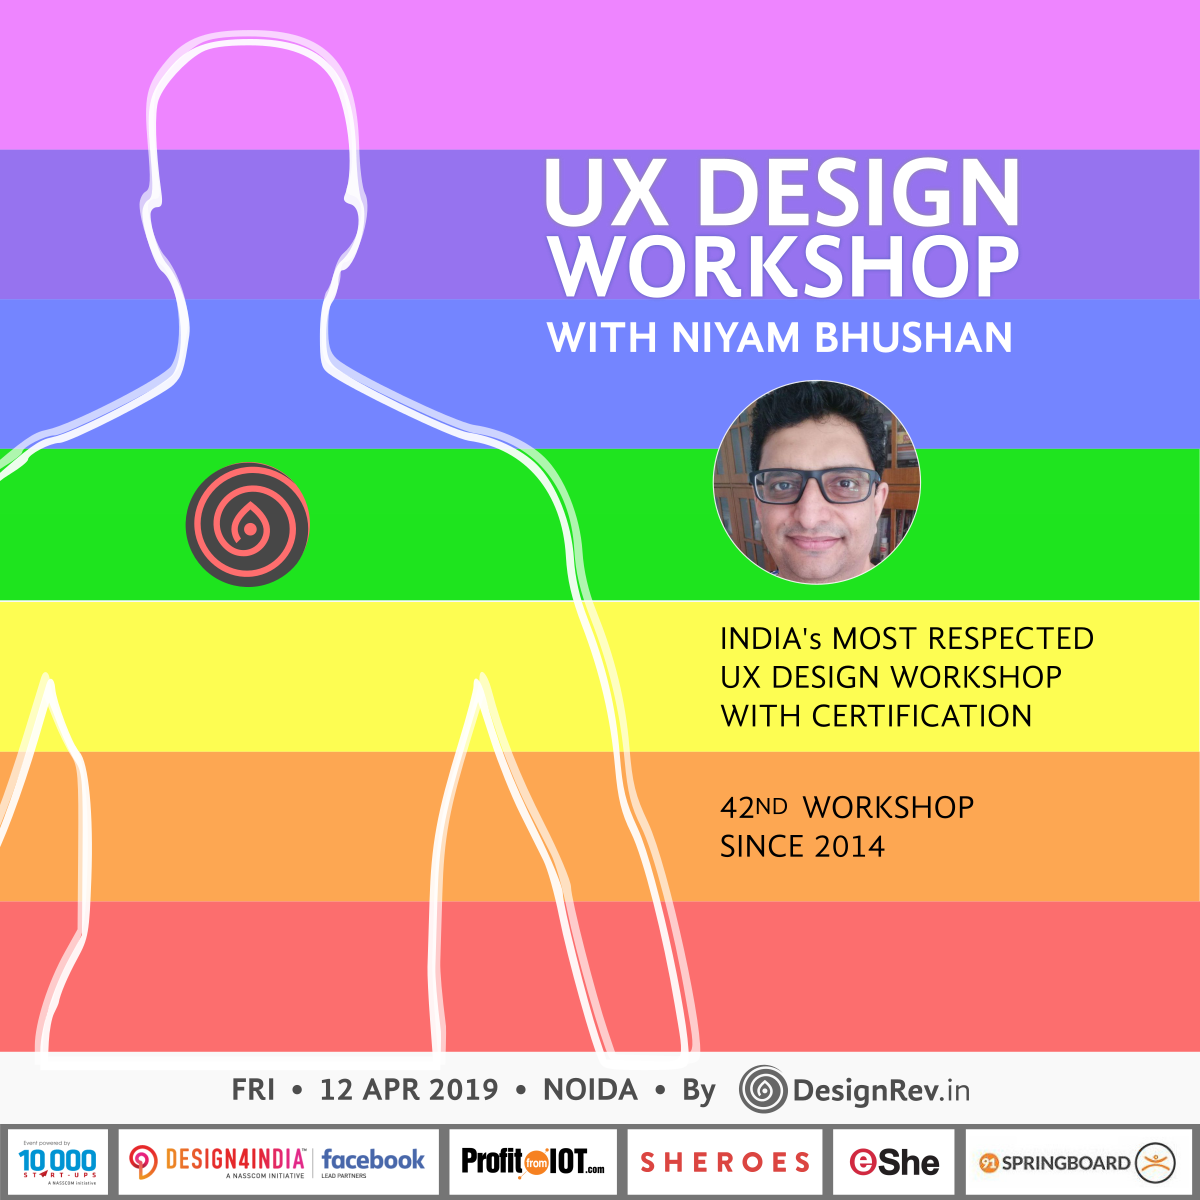 42nd UX Design Workshop with Niyam Bhushan in NOIDA